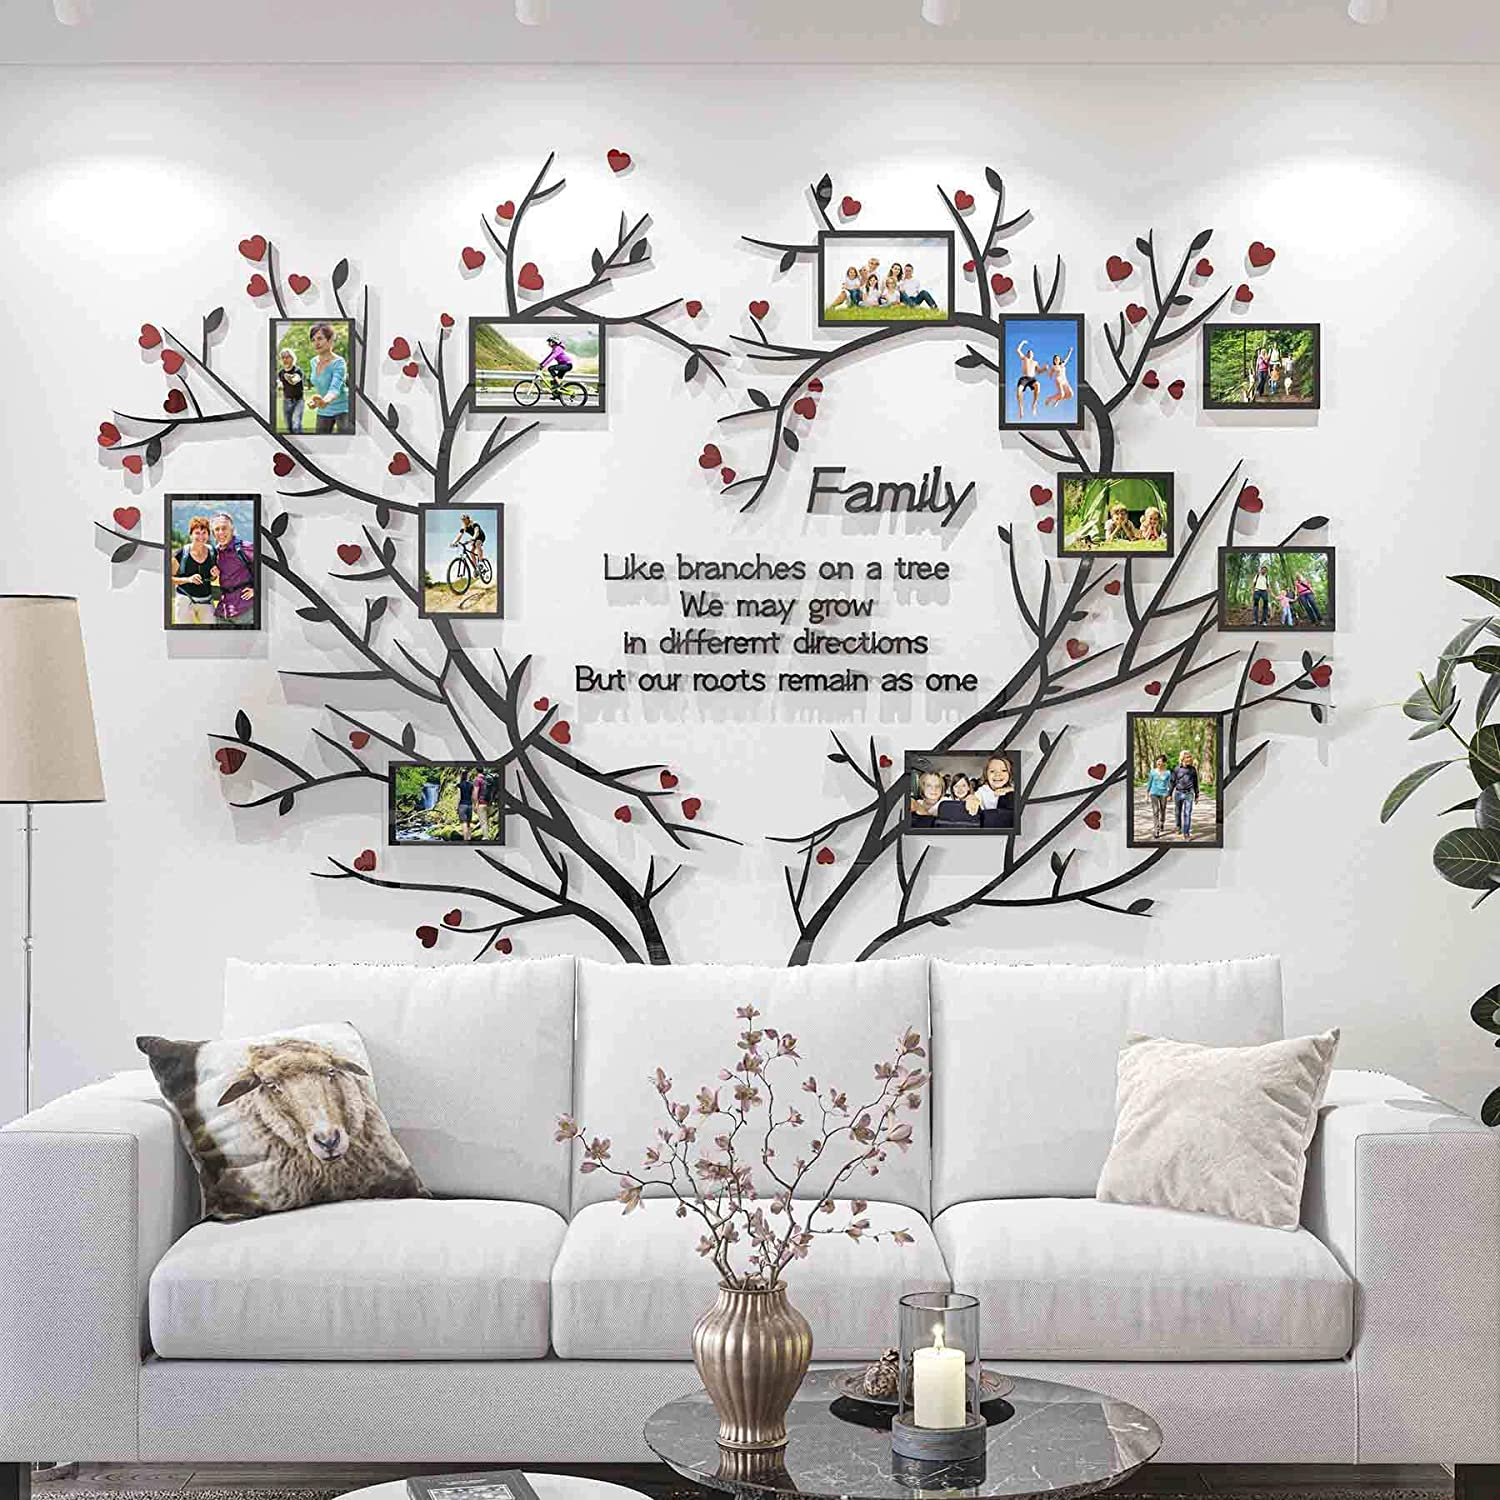 DecorSmart Love Family Tree Wall Decor Picture Frame Collage Removable 3D DIY Acrylic Wall Stickers for Living Room with Red Heart and Quote Family Like Branches on a Tree